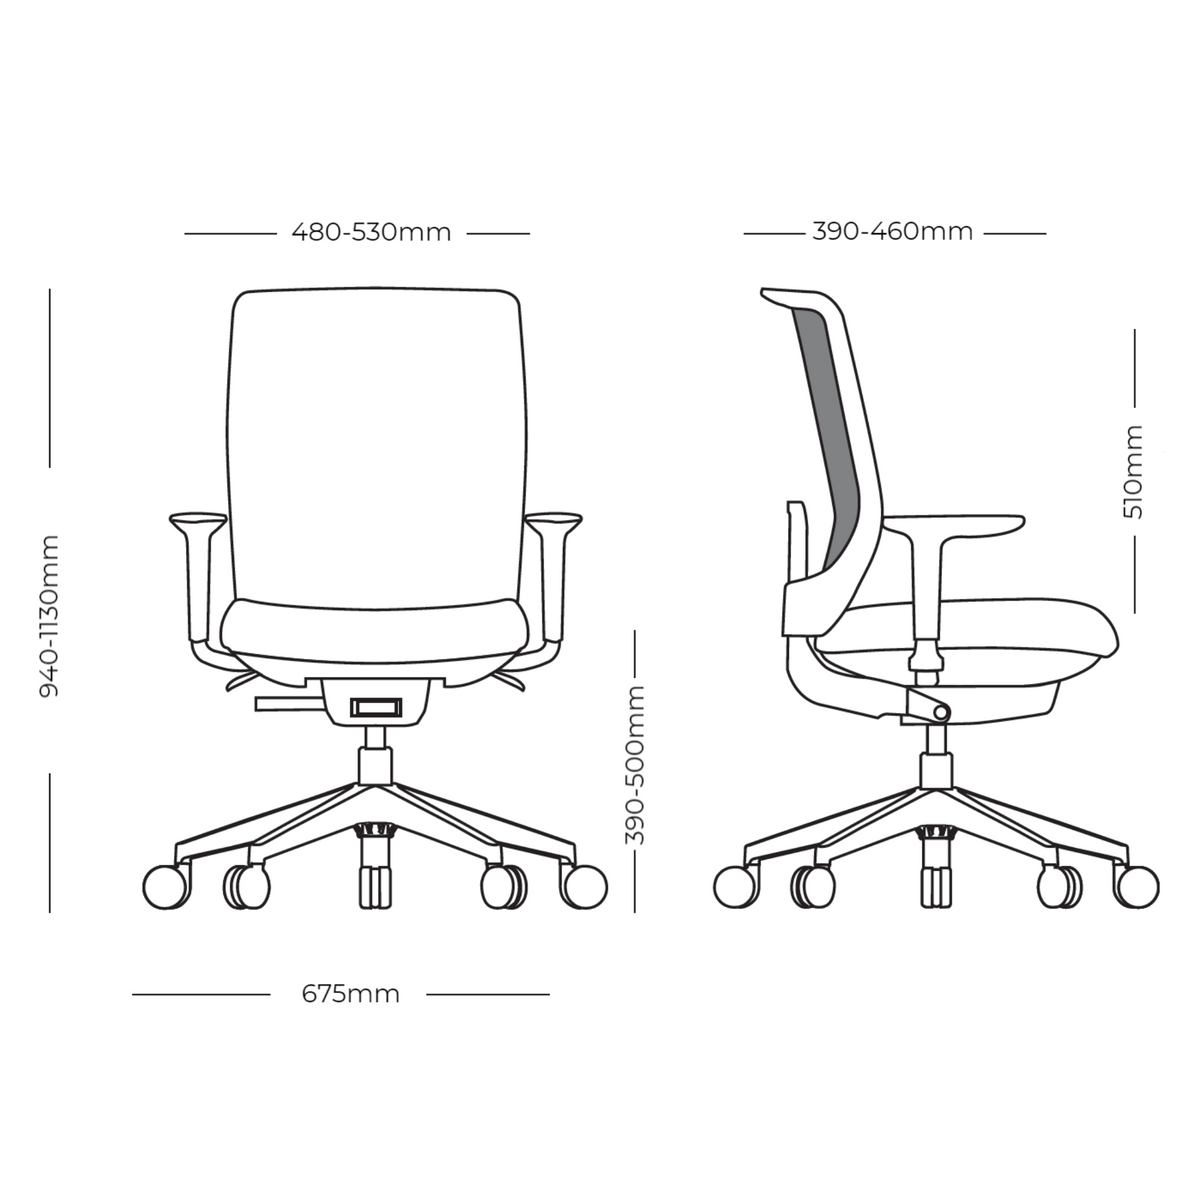 Dimensions for Actiu Office Trim 30 Task Chair